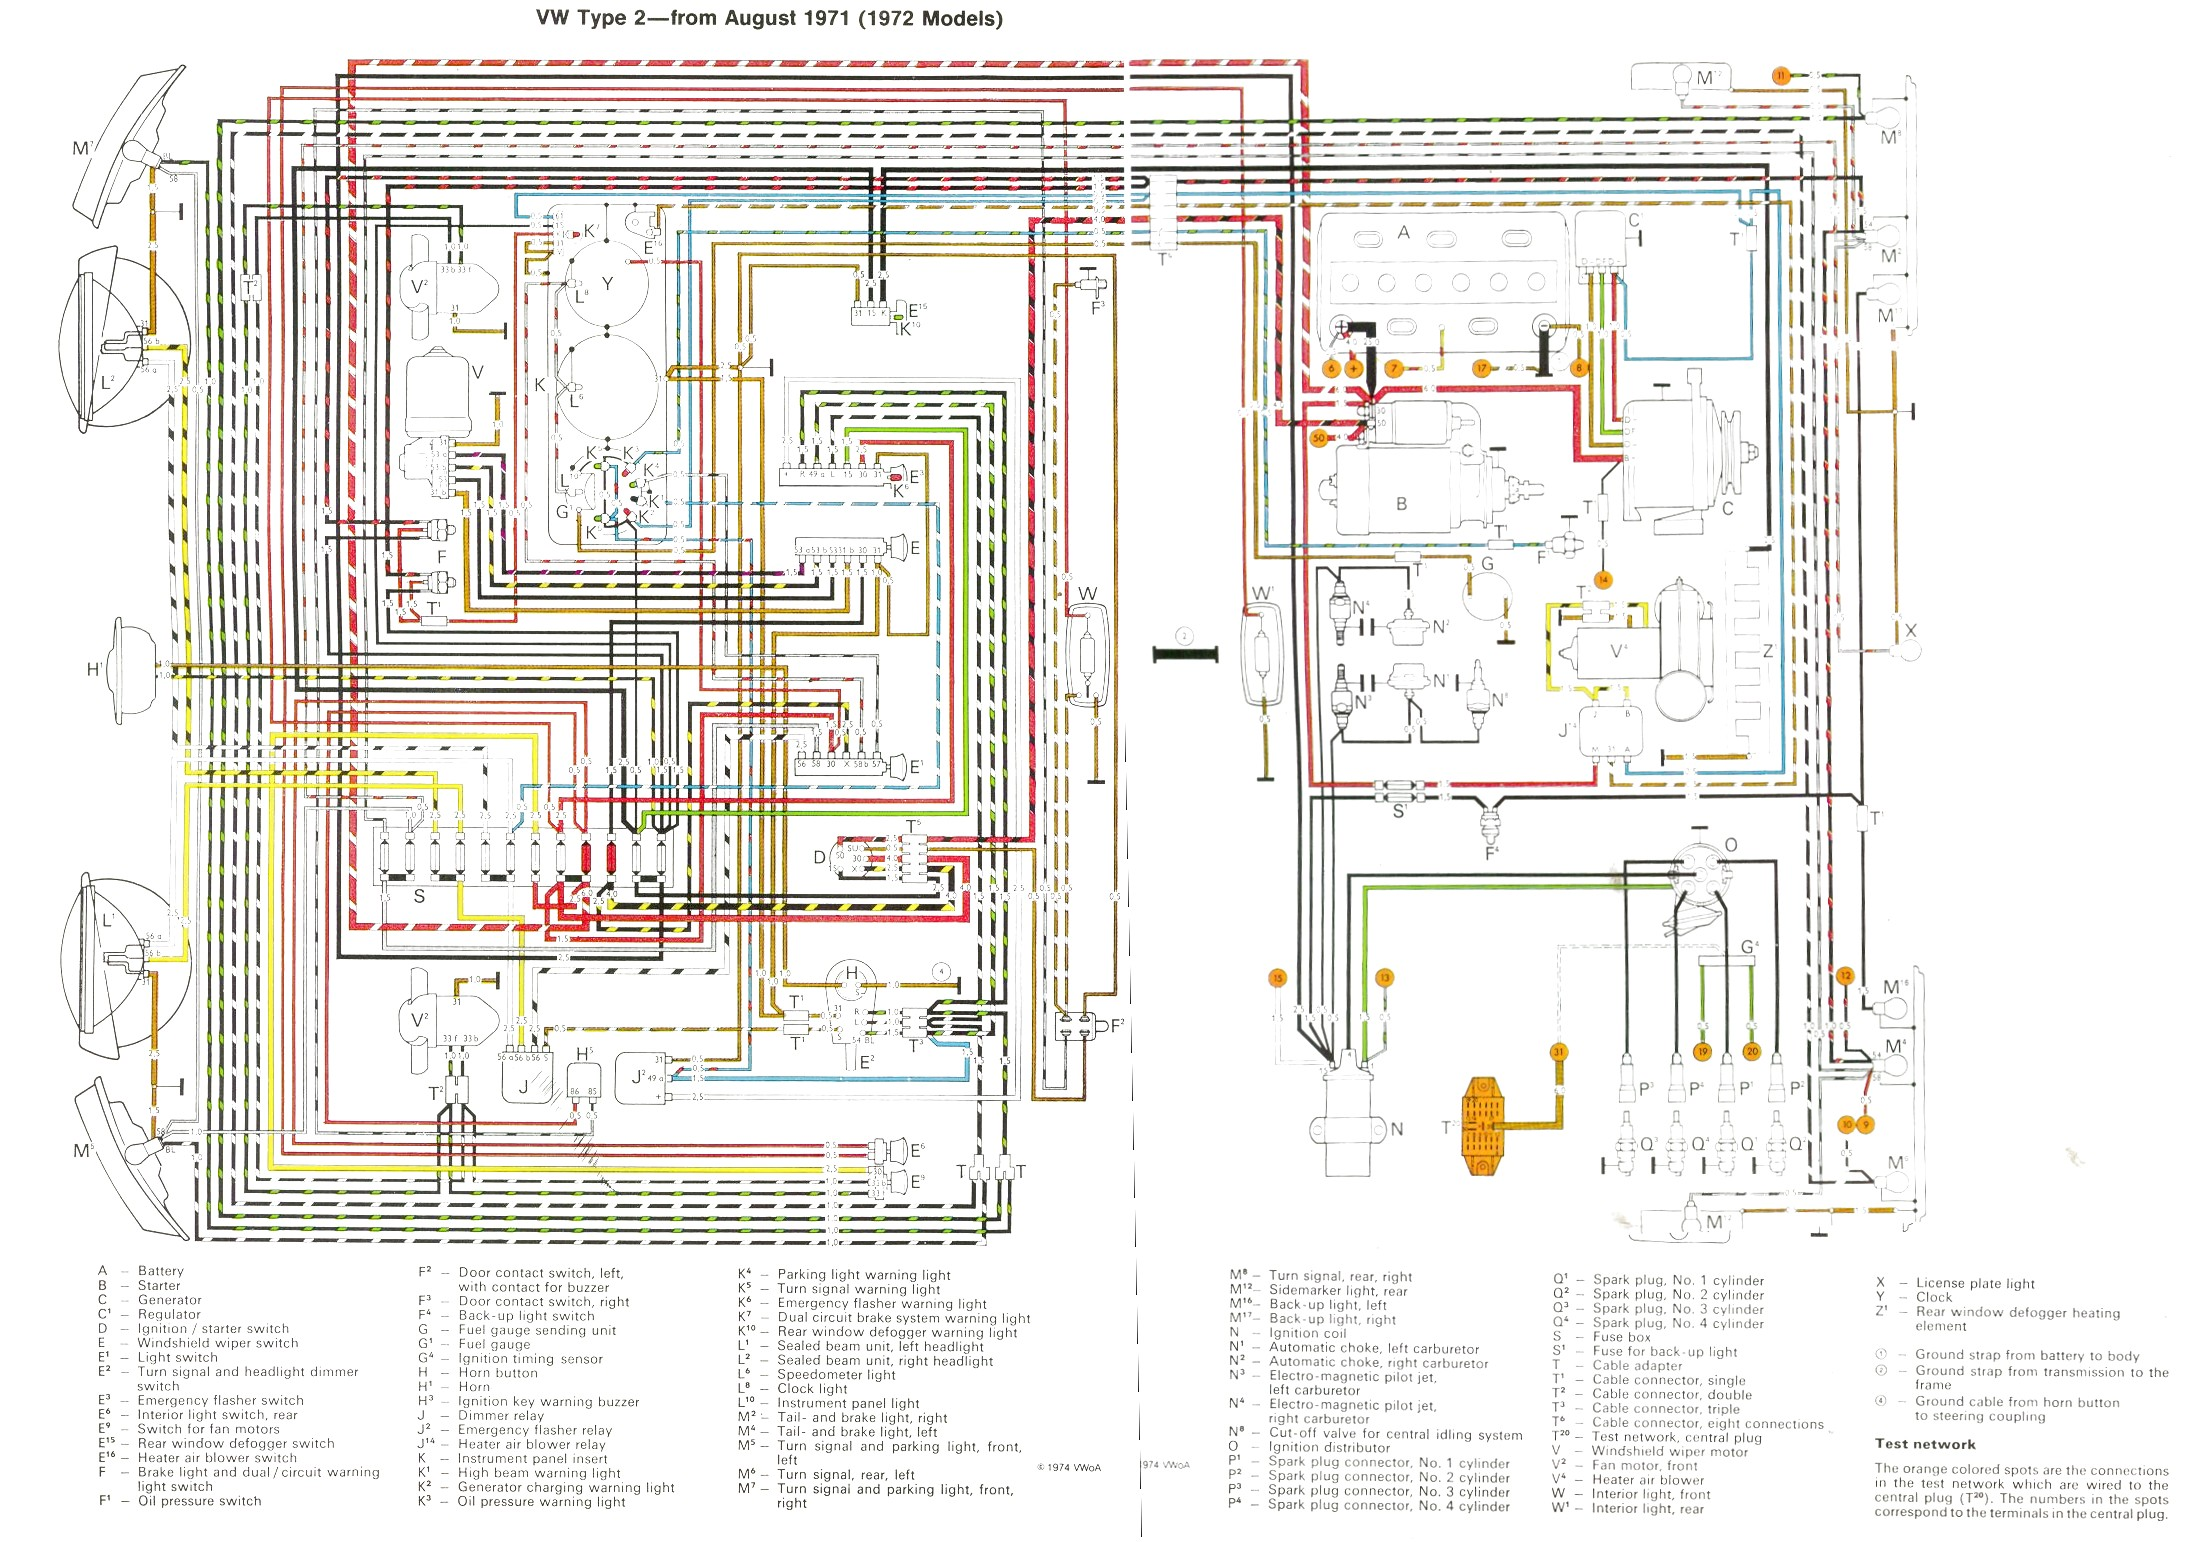 Jack Wiring Diagram View Diagram Stereo Headphone Plug Wiring Diagram